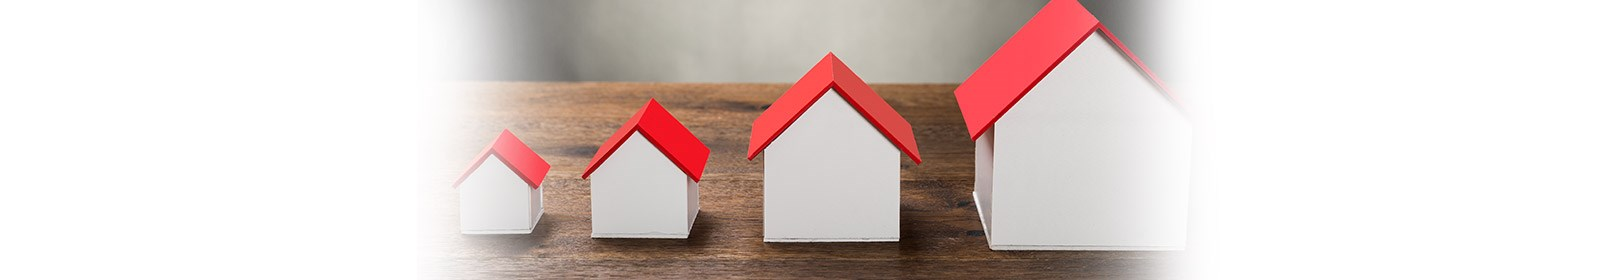 Affordable housing is outperforming the rest of the market